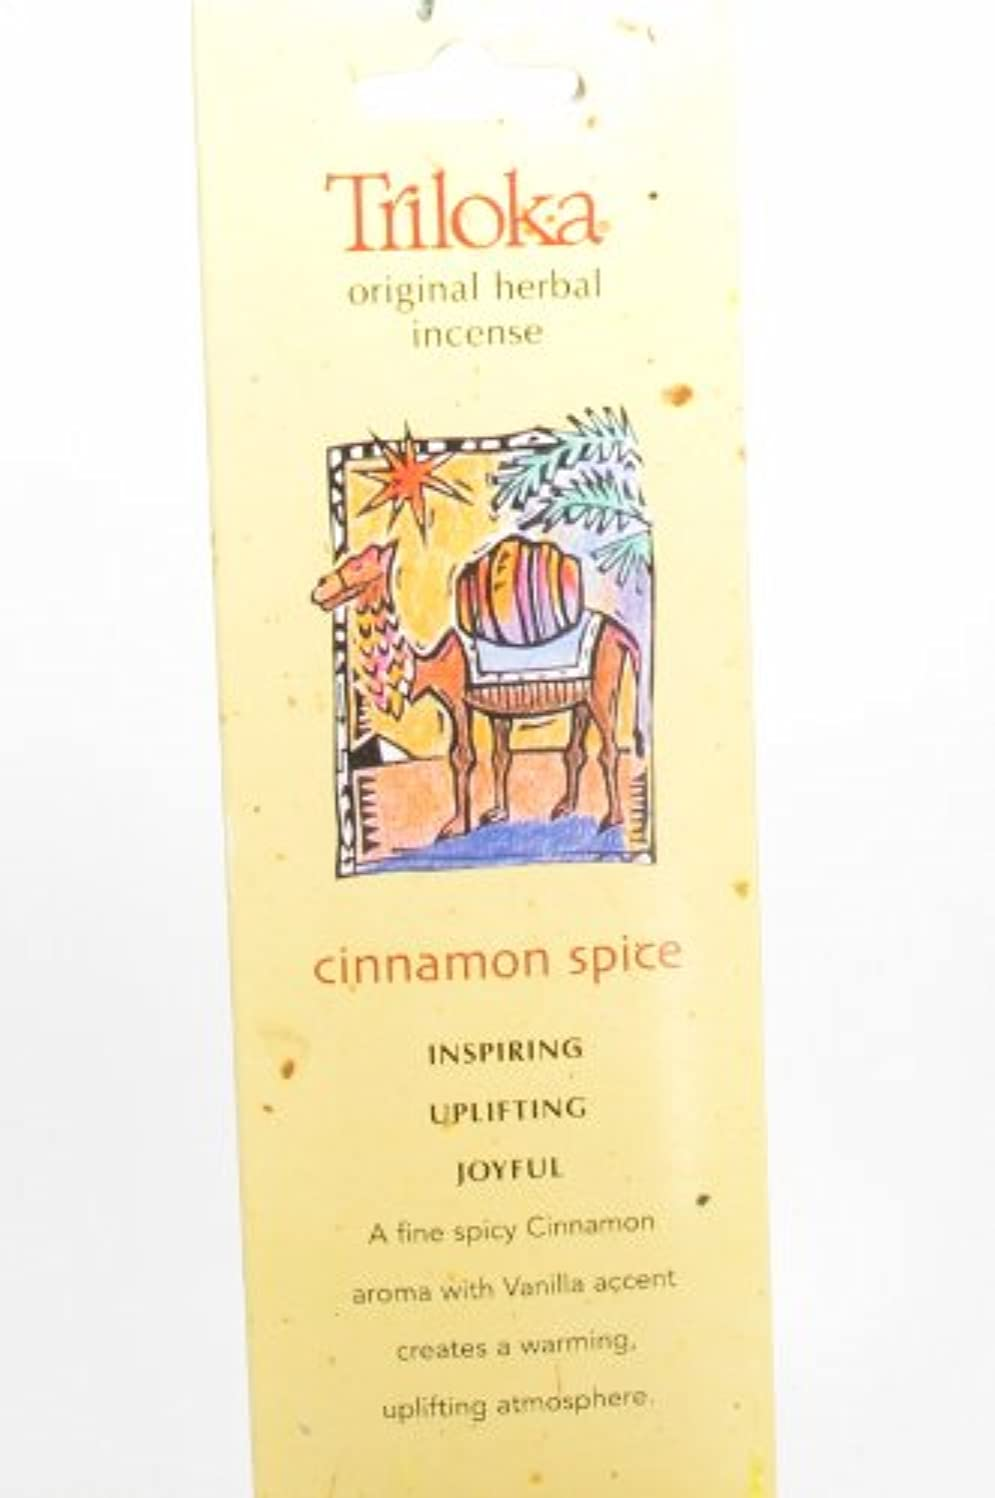 先に征服する温室Cinnamon Spice – Triloka元Herbal Incense Sticks